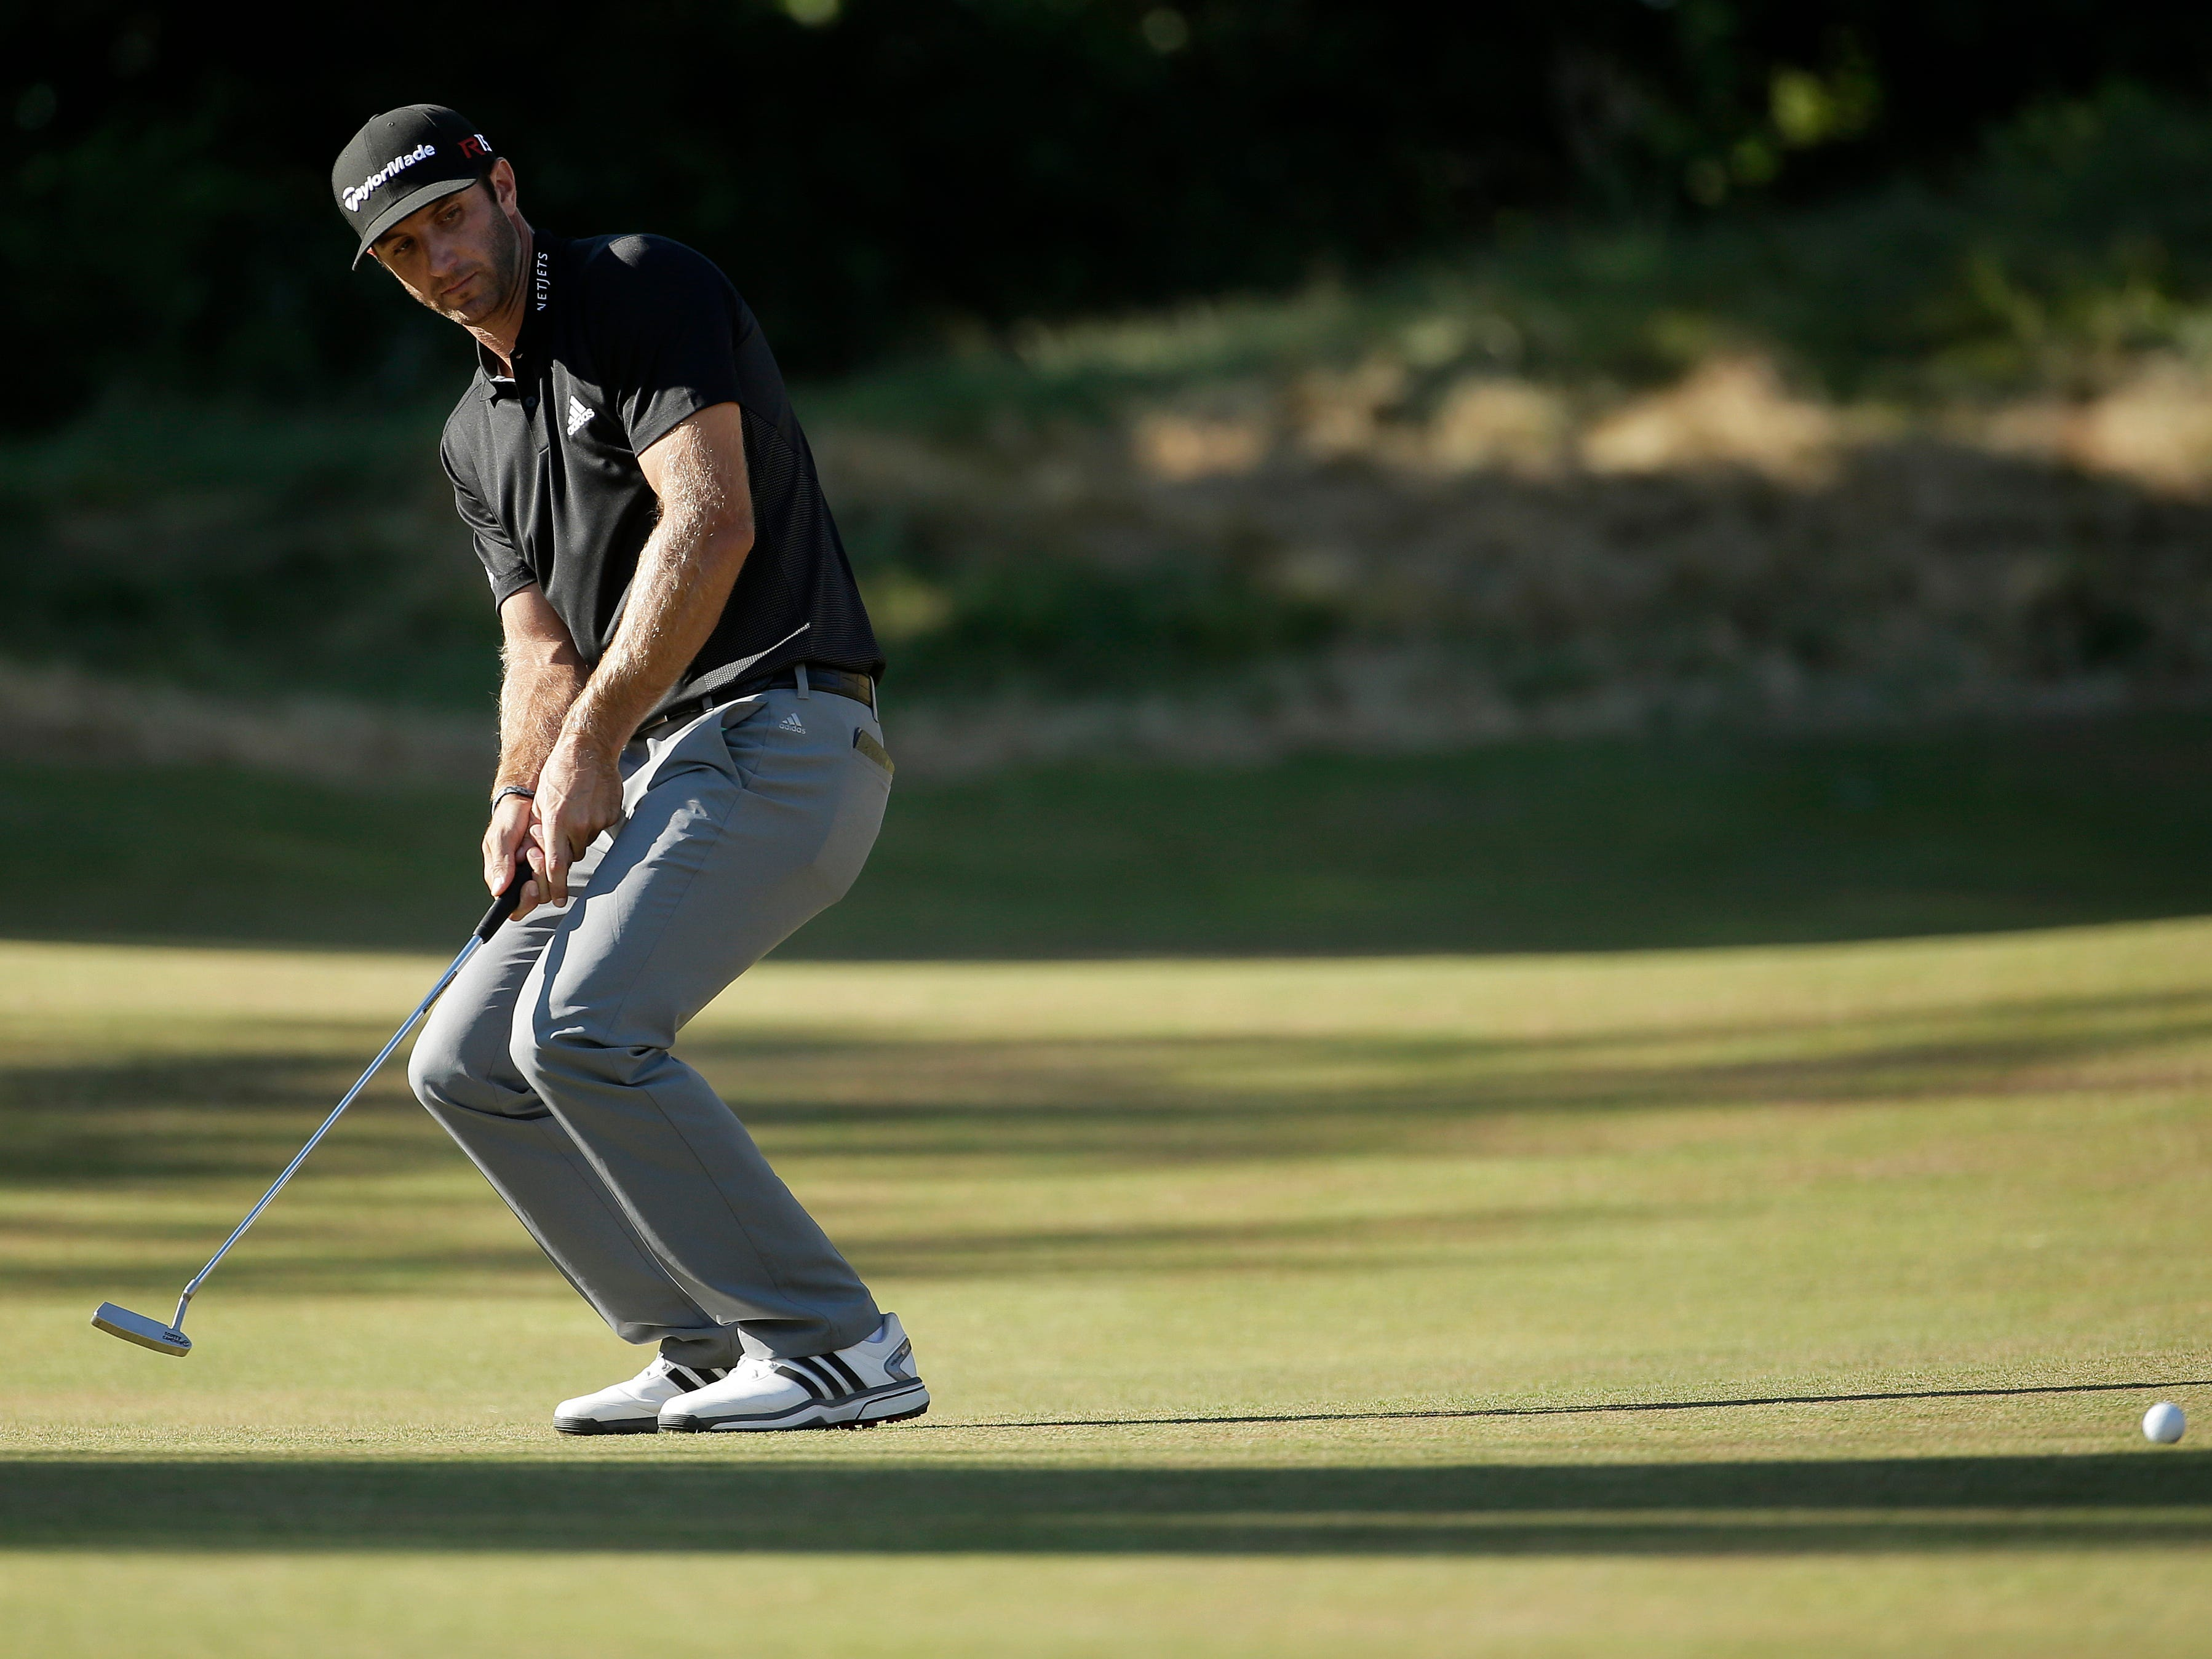 Dustin Johnson reacts to his putt on the 12th hole during the second round of the U.S. Open golf tournament at Chambers Bay on Friday, June 19, 2015 in University Place, Wash. (AP Photo/Charlie Riedel)